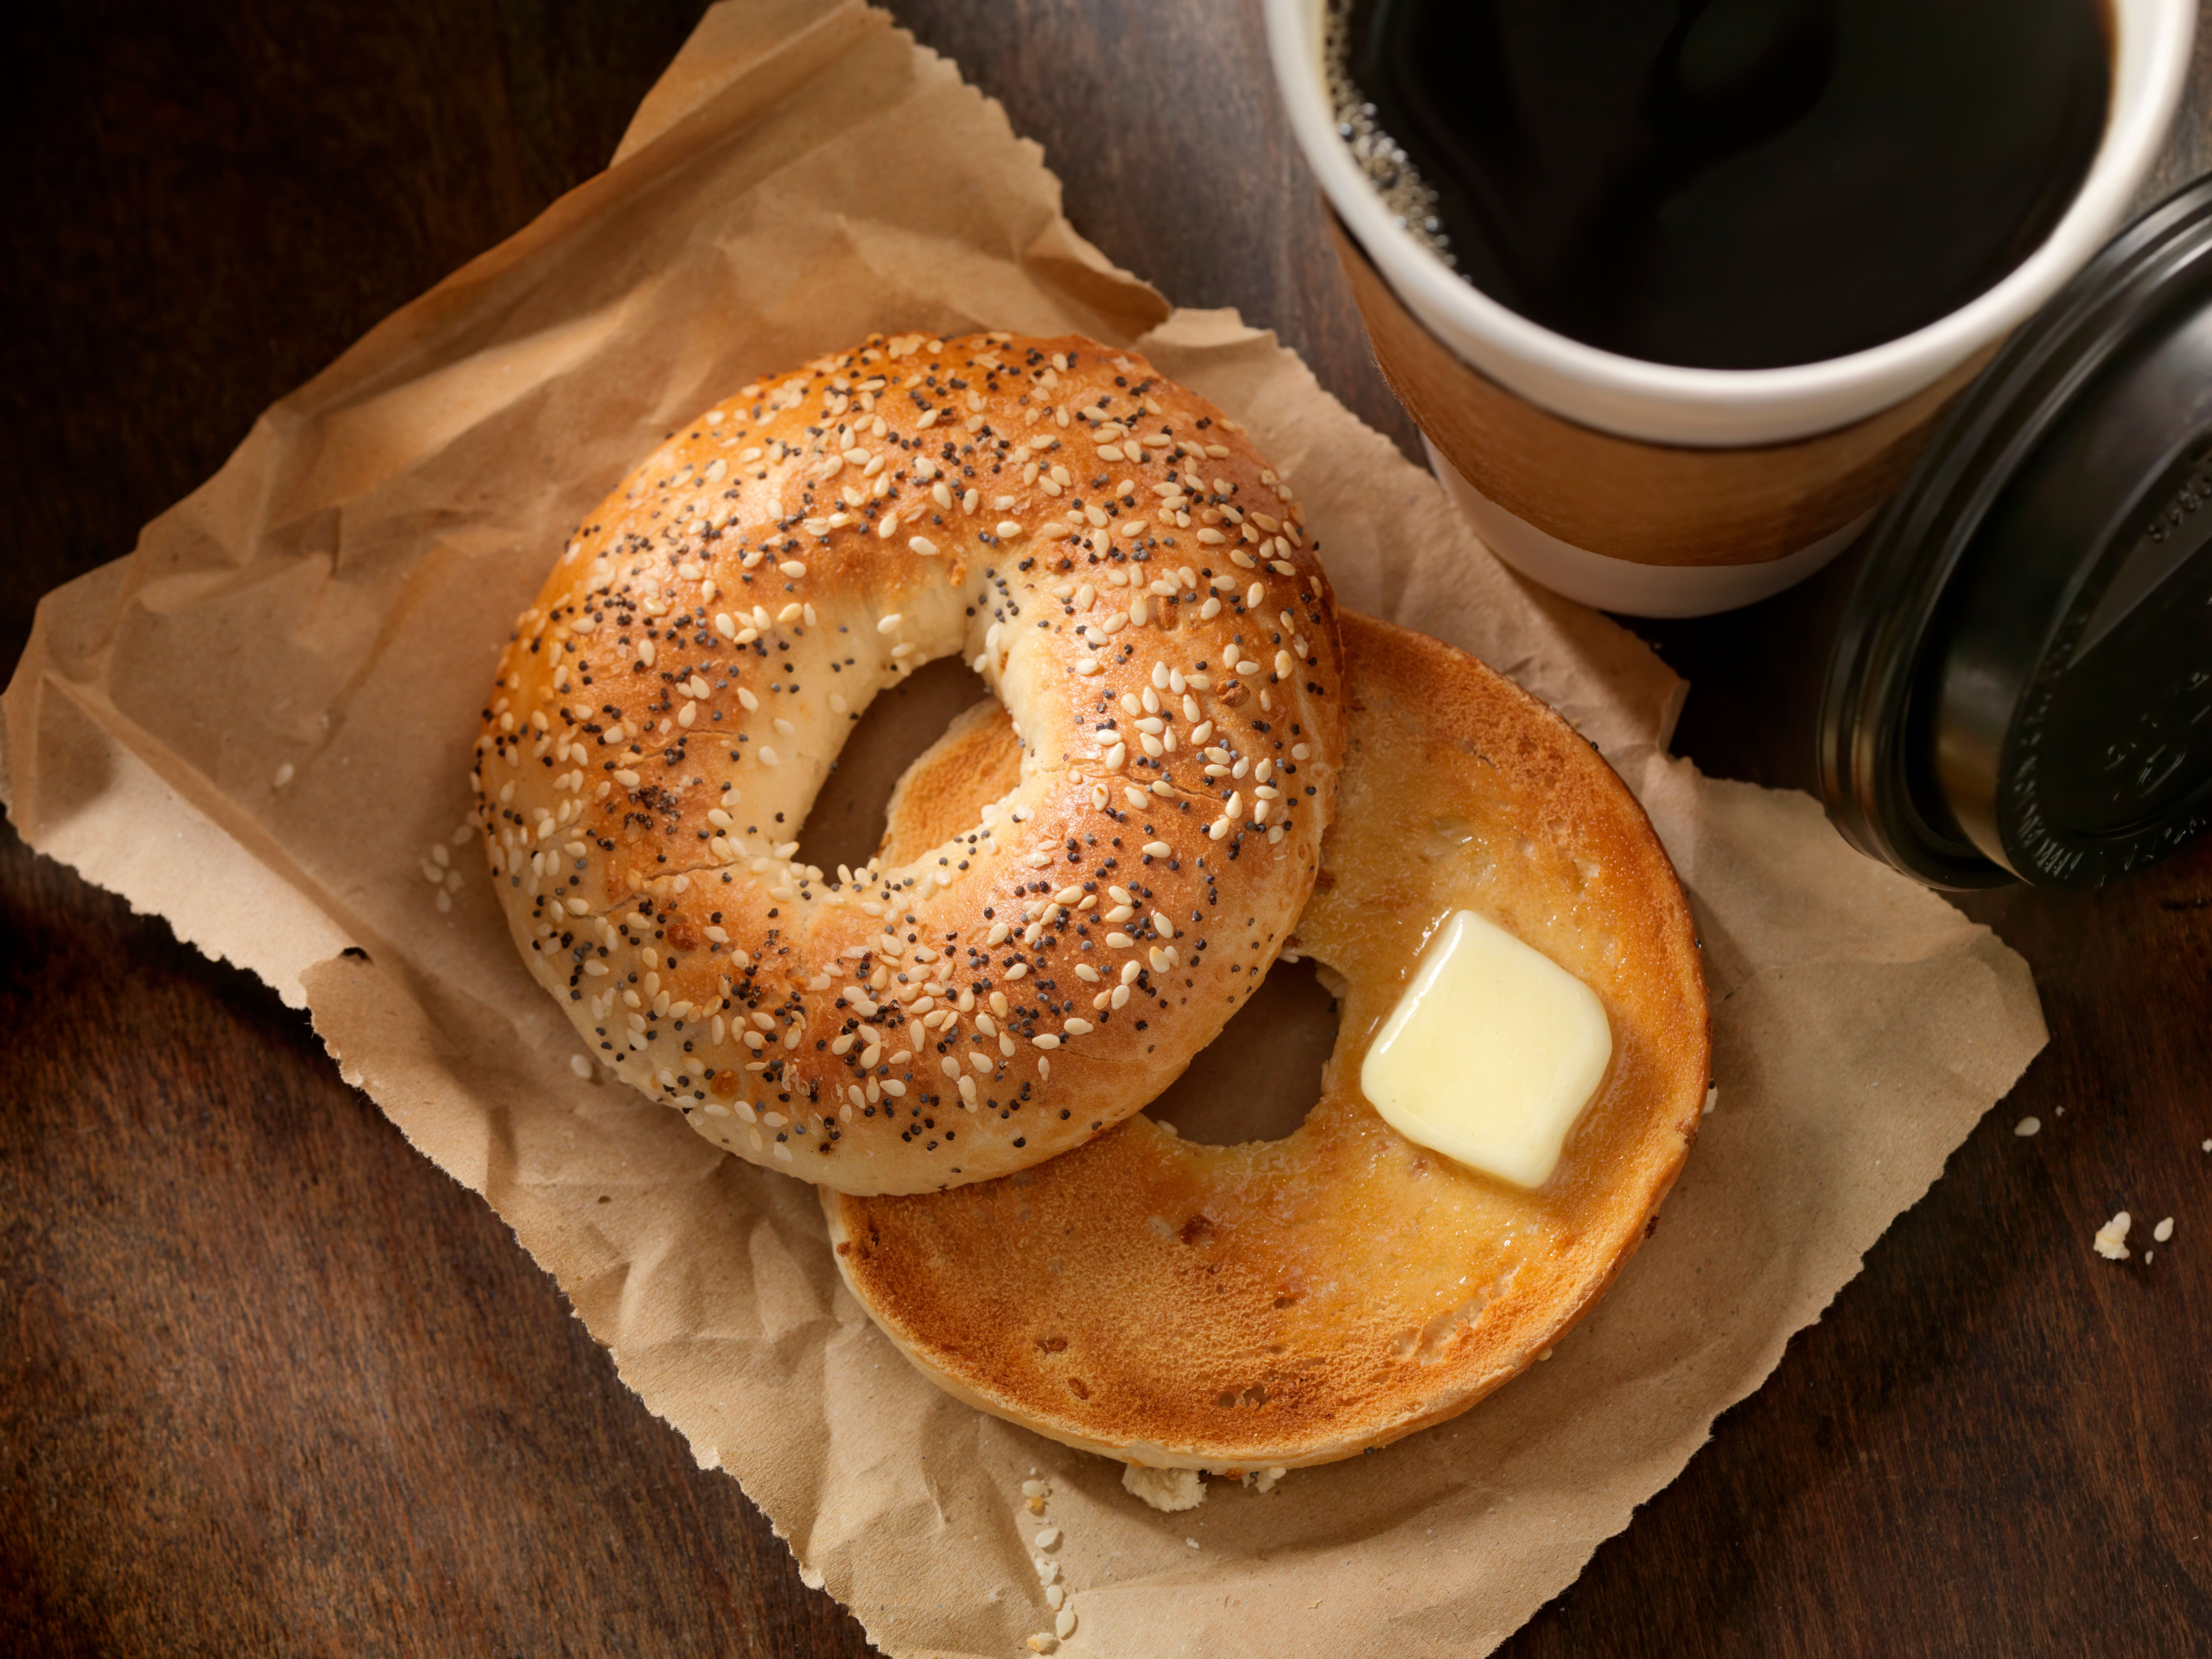 Toasted Bagel with Butter and a Take out Coffee - Photographed on a Hasselblad H3D11-39 megapixel Camera System